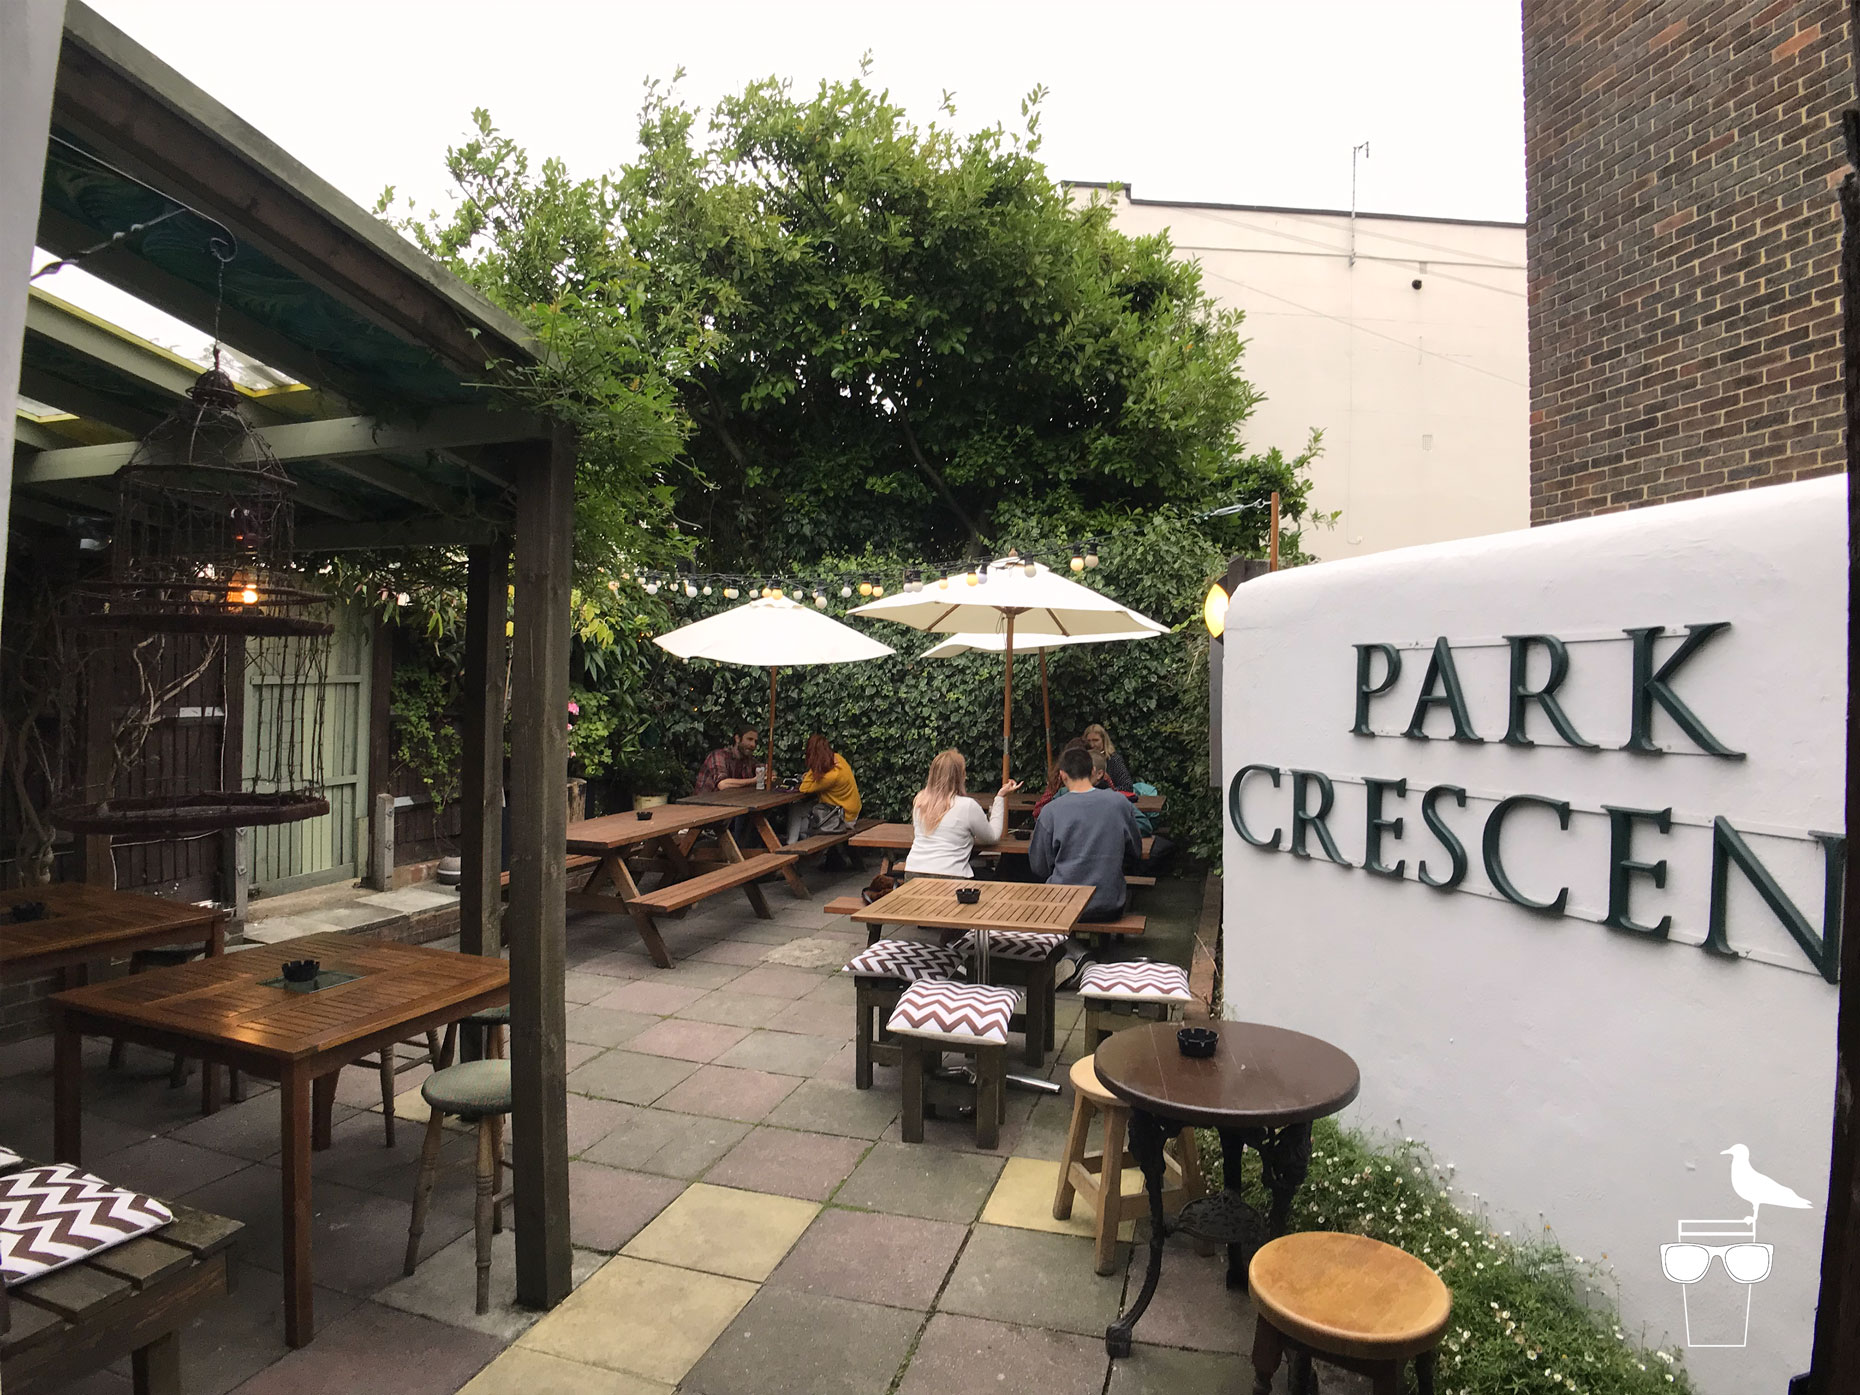 the-park-crescent-pub-brighton-back-garden